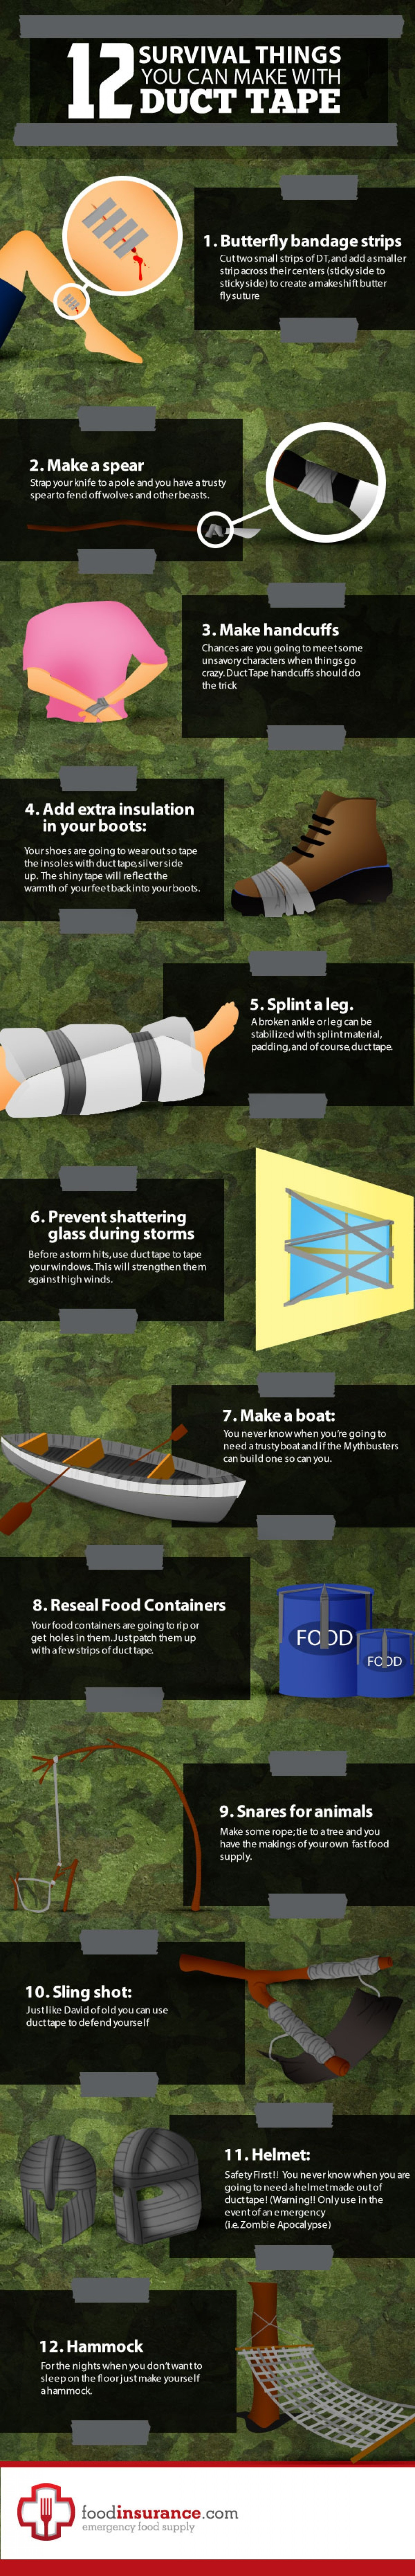 08 12-survival-things-you-can-make-with-duct-tape_5329aec907dc8_w1500